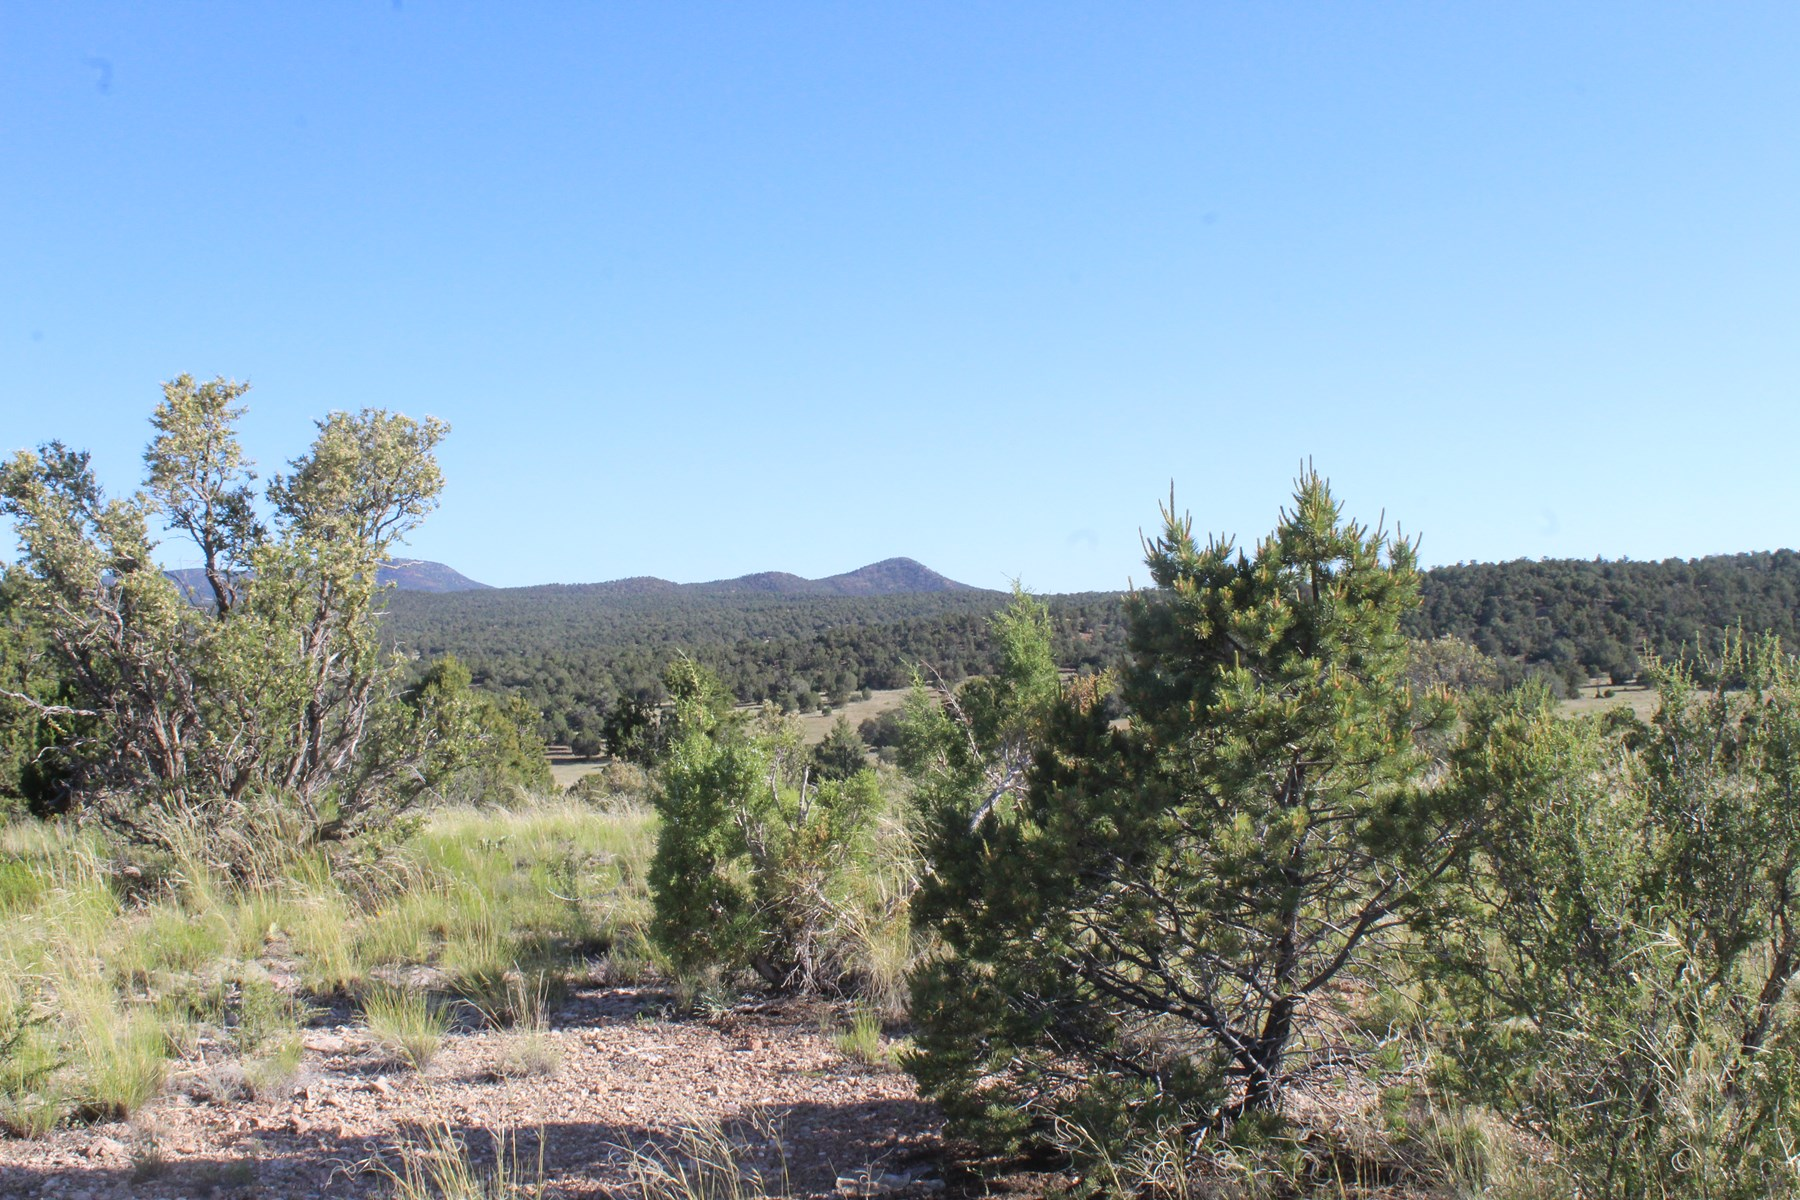 Land that borders Public Land for sale in Seligman AZ